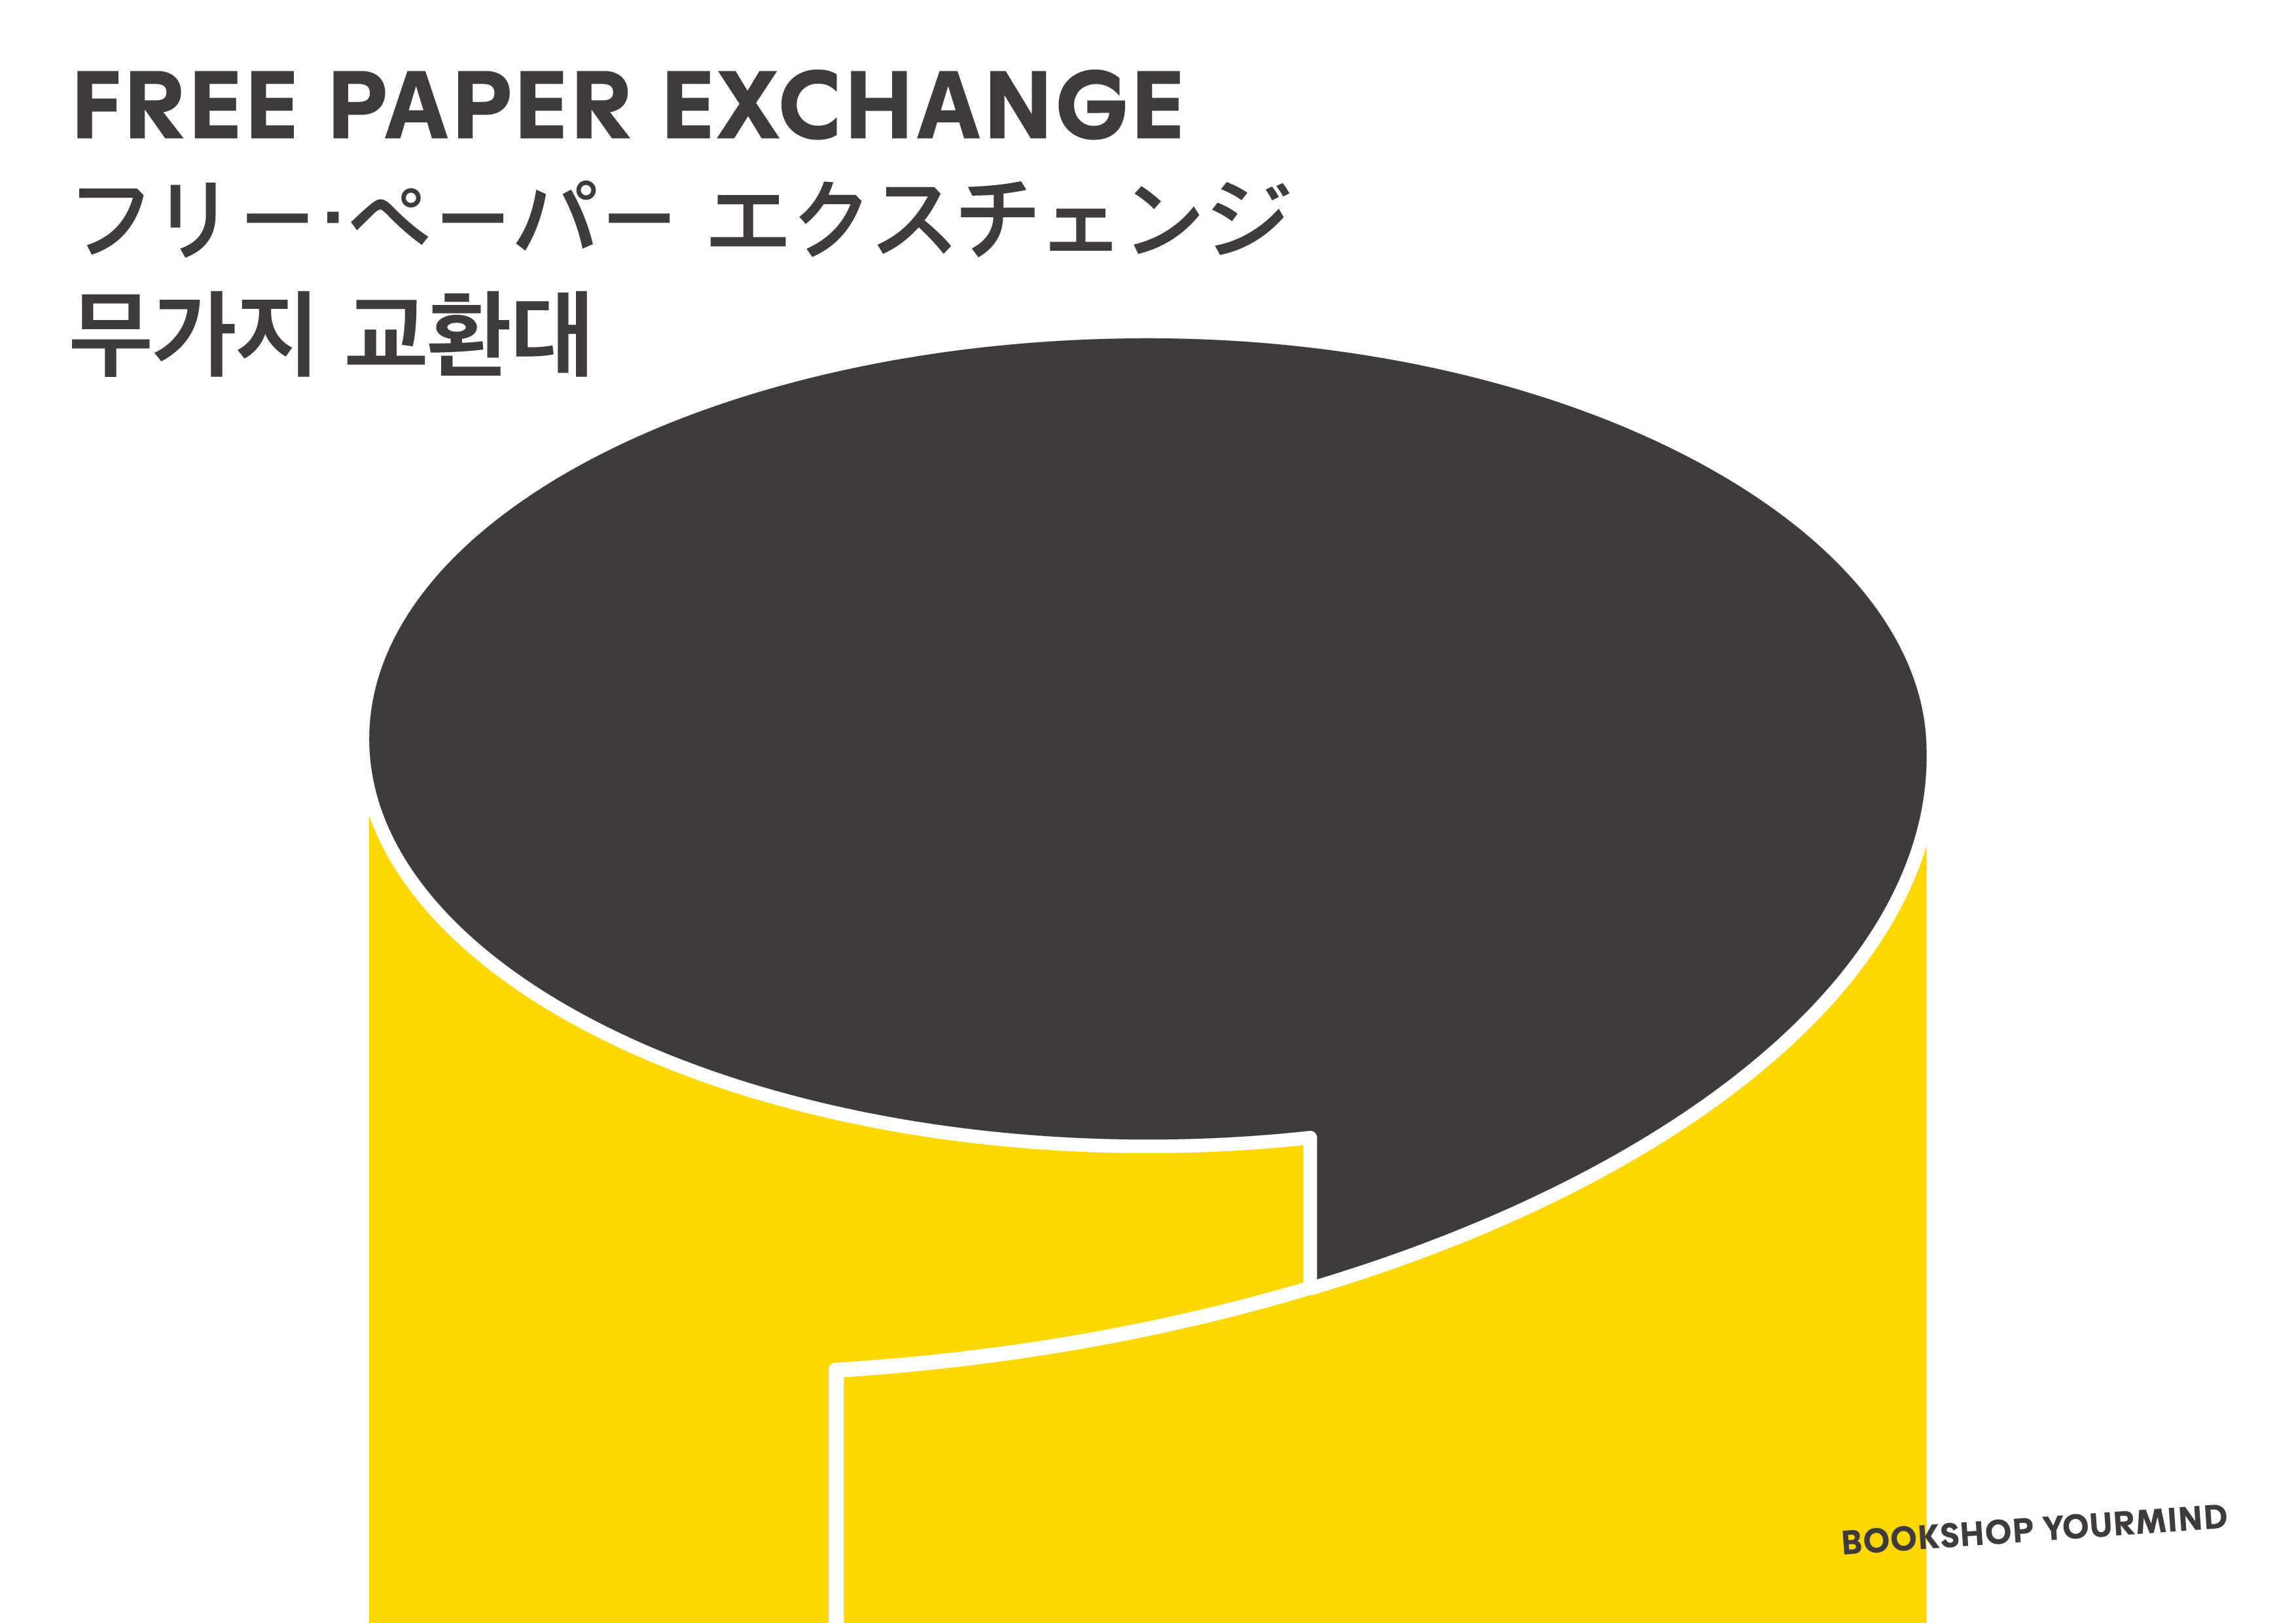 Free paper exchange